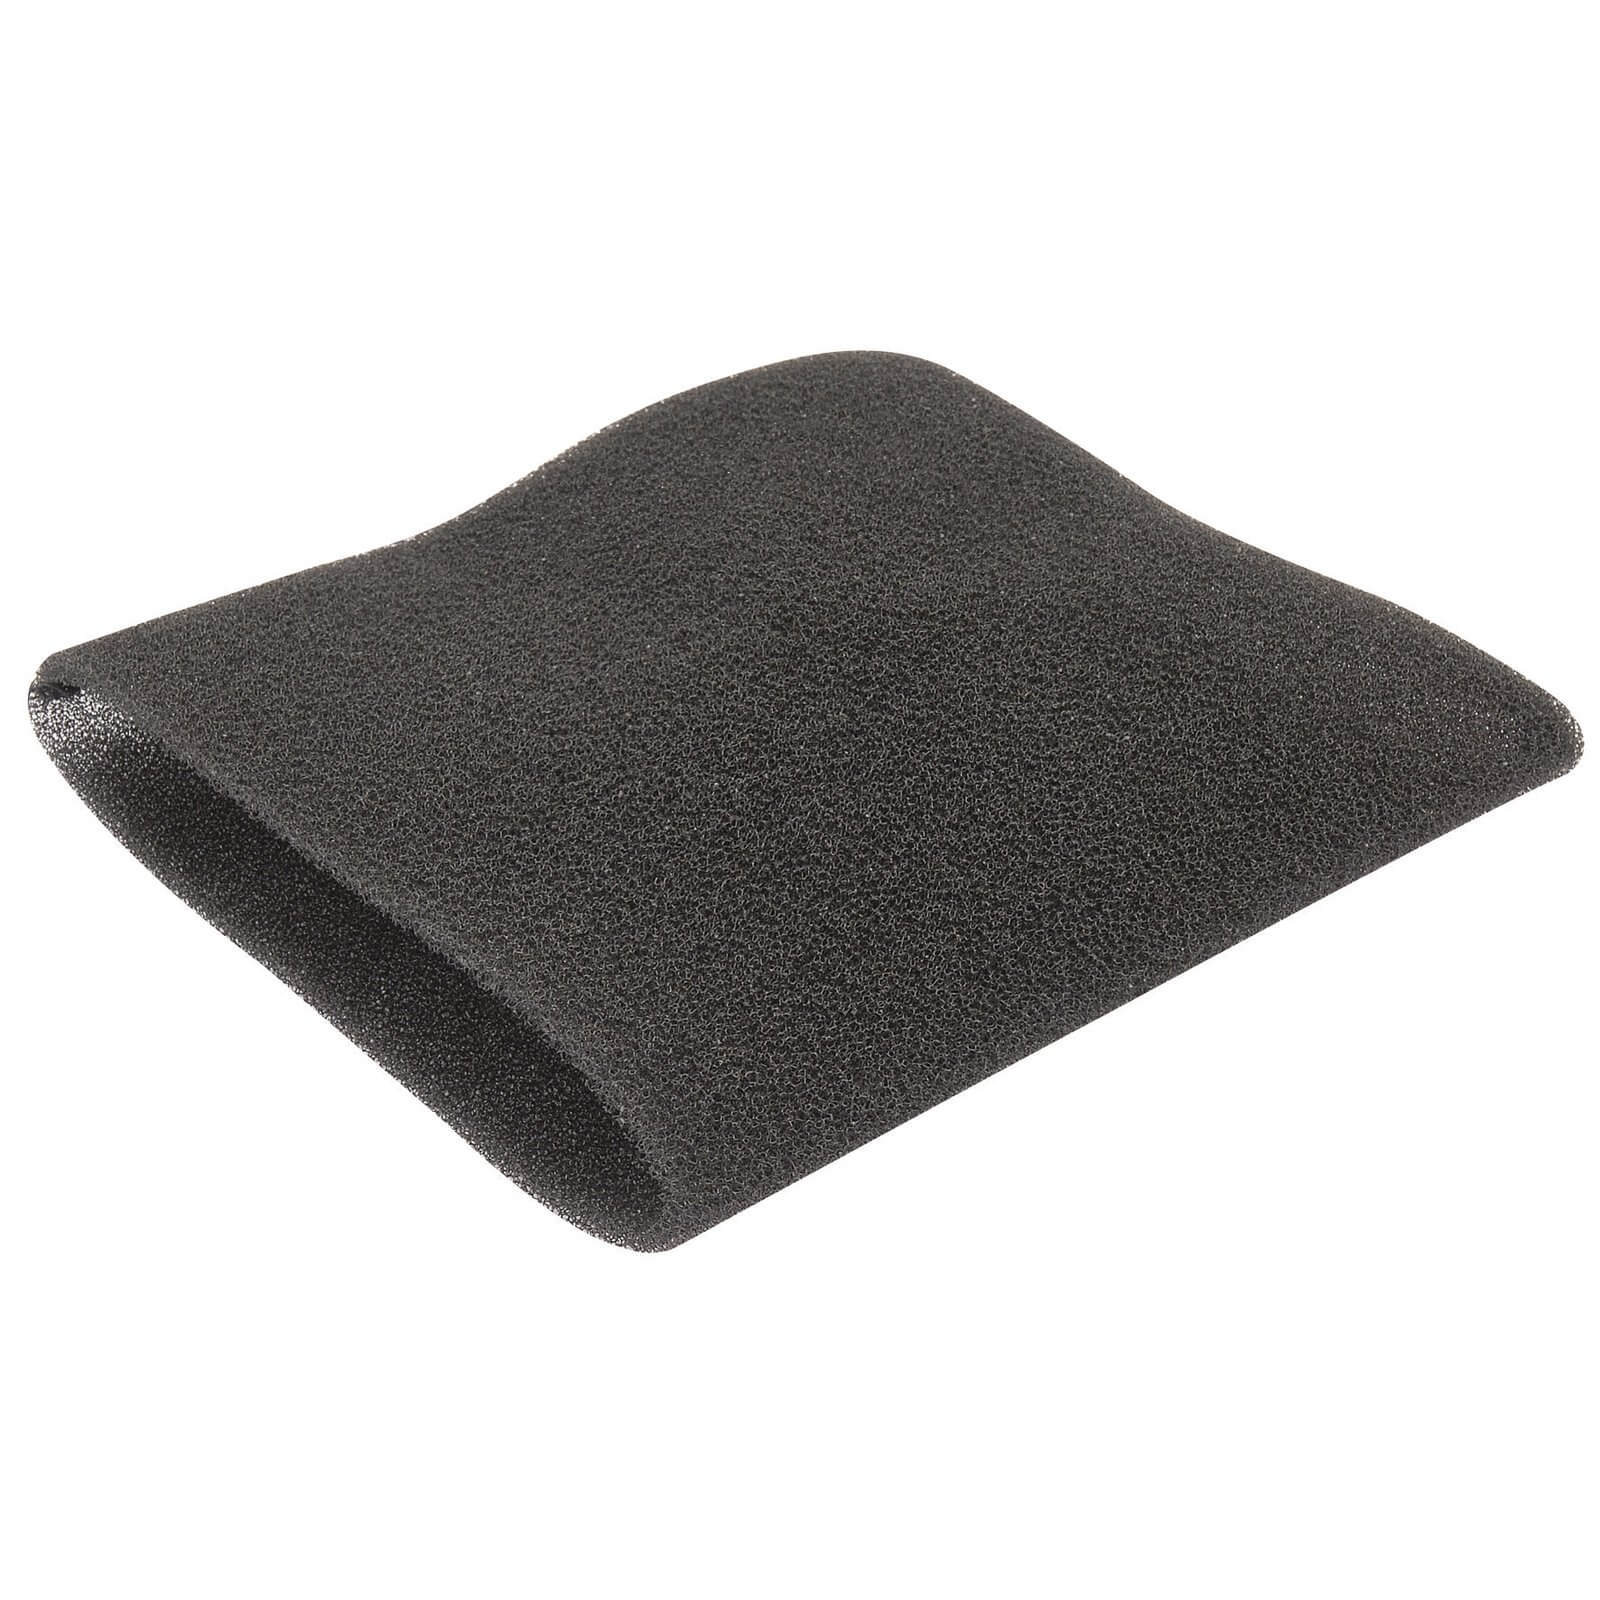 Draper Anti Foam Filter for 36313 Vacuum Cleaner